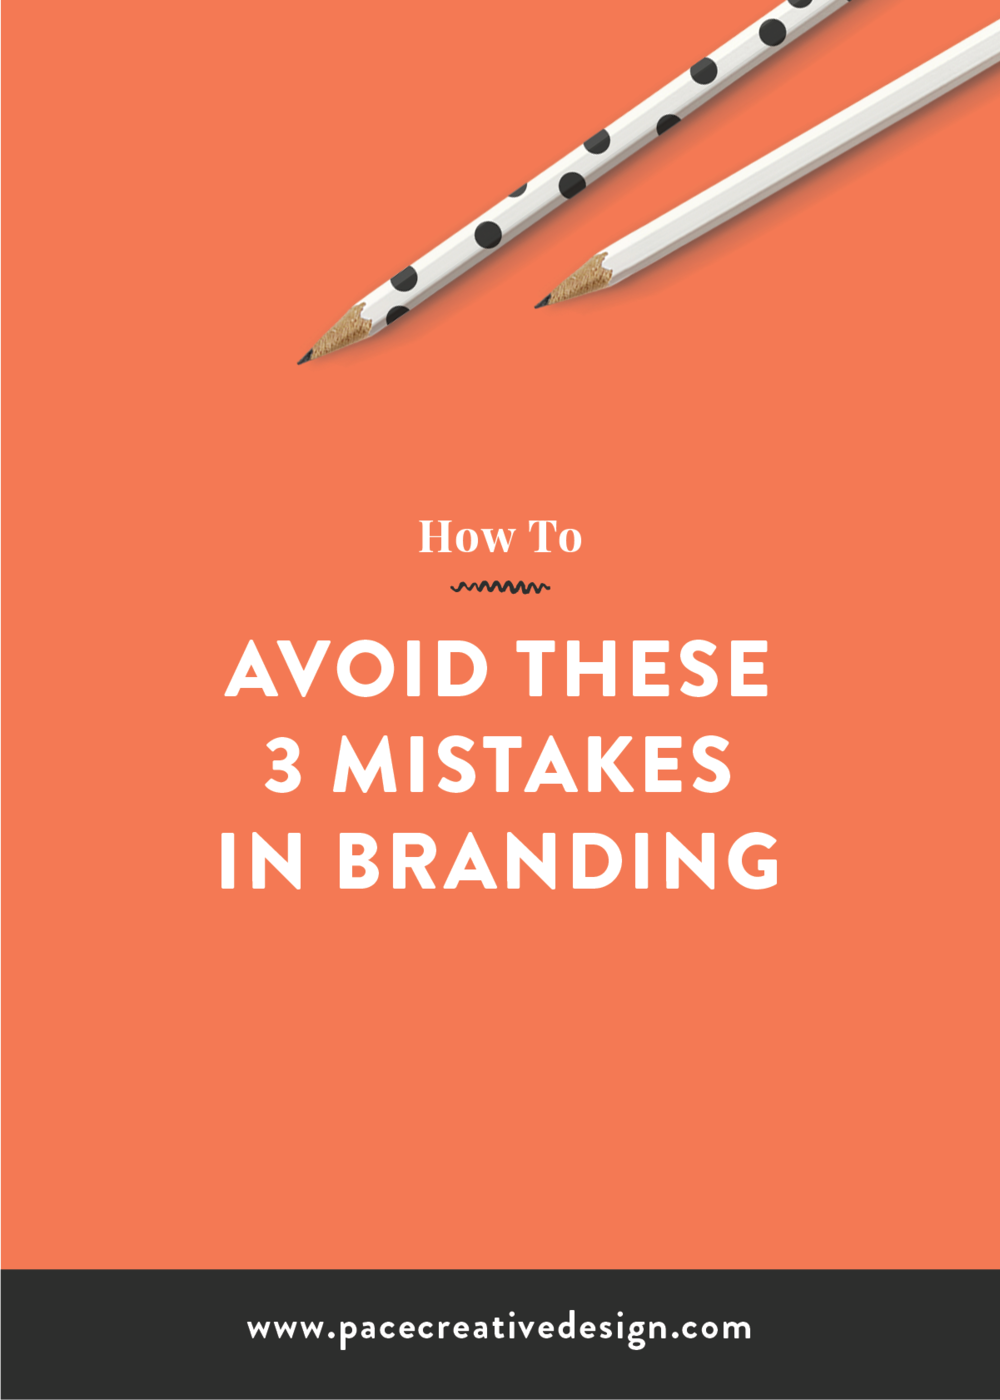 How To Avoid these 3 Mistakes in Branding by Pace Creative Design Studio